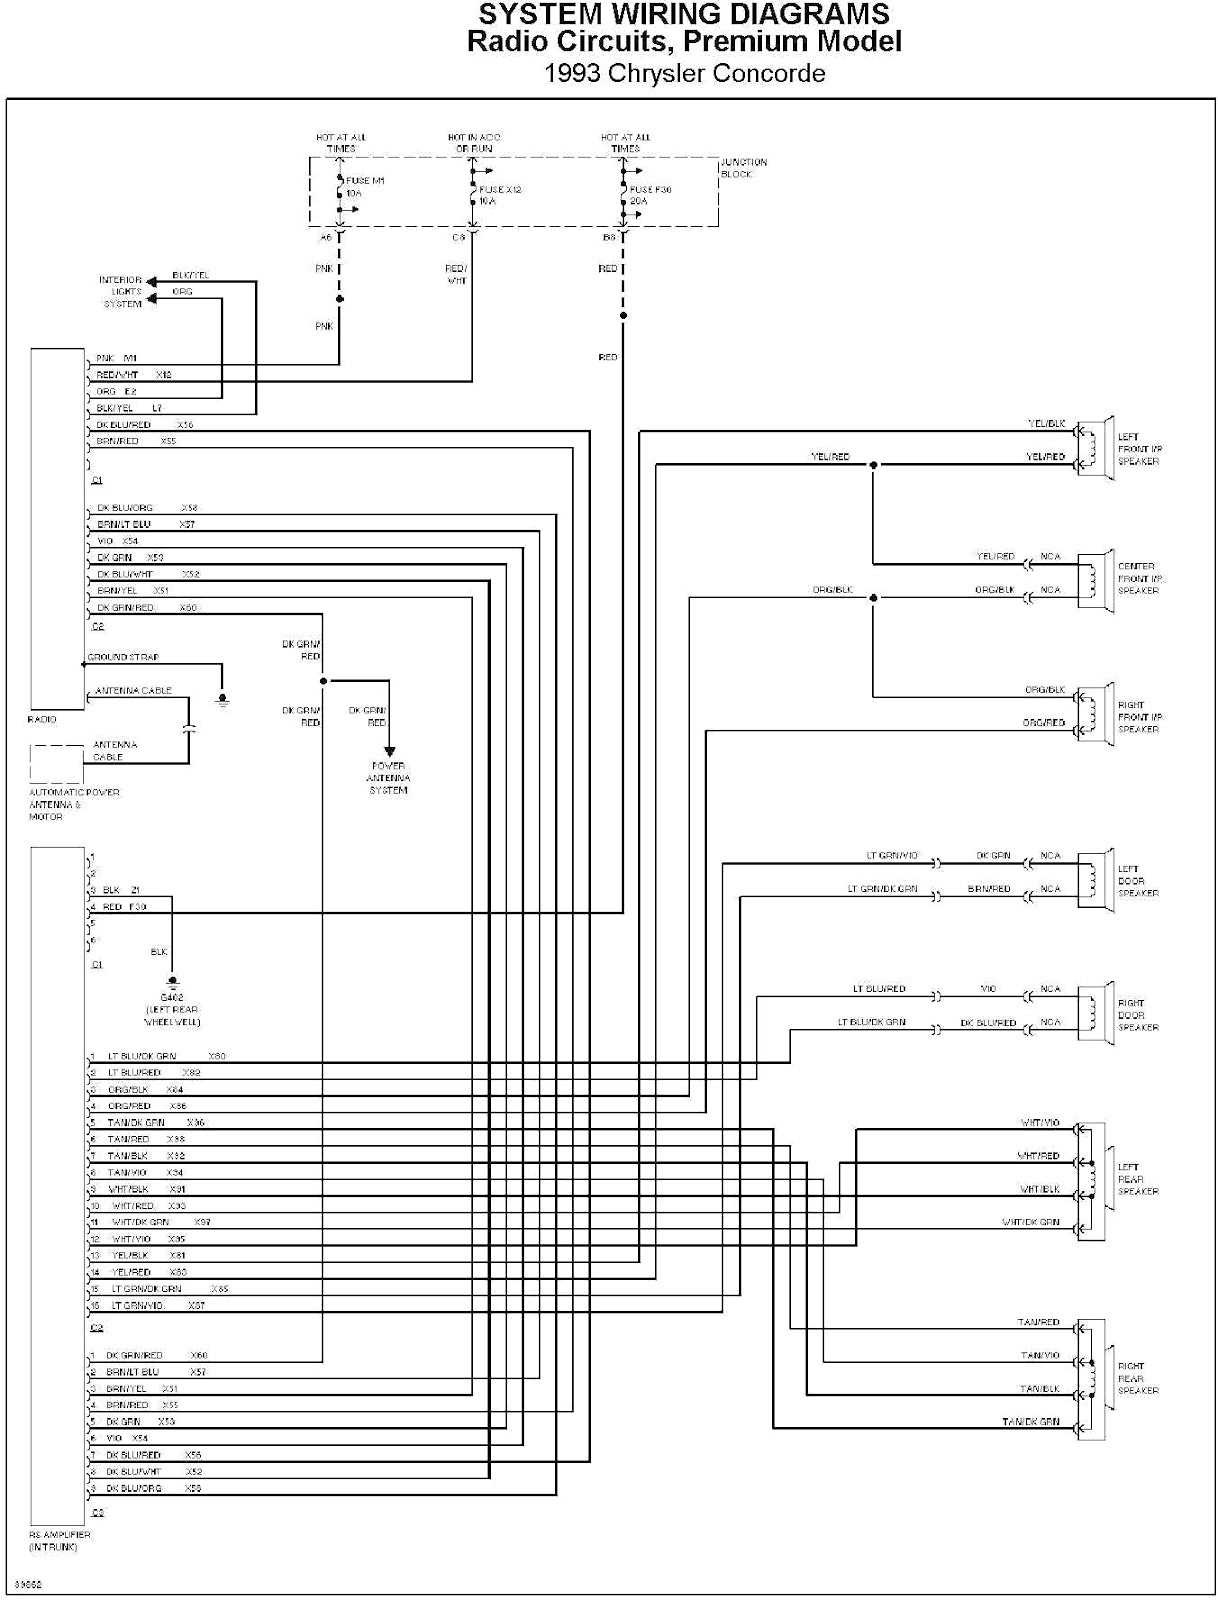 Harley Pin Wiring Diagram on 7 pin connector diagram, 7 prong trailer plug diagram, 7 pin trailer diagram, 7 pin power supply, 7 pin cover, 7 pin electrical, 7 pin battery, 7 pin controller diagram, sae j1850 pin diagram, 7 pin ford, 7 pin coil, 7 pin cable, 7 pin regulator, 7 pin relay diagram, 7 pin plug diagram, 7 pronge trailer connector diagram,